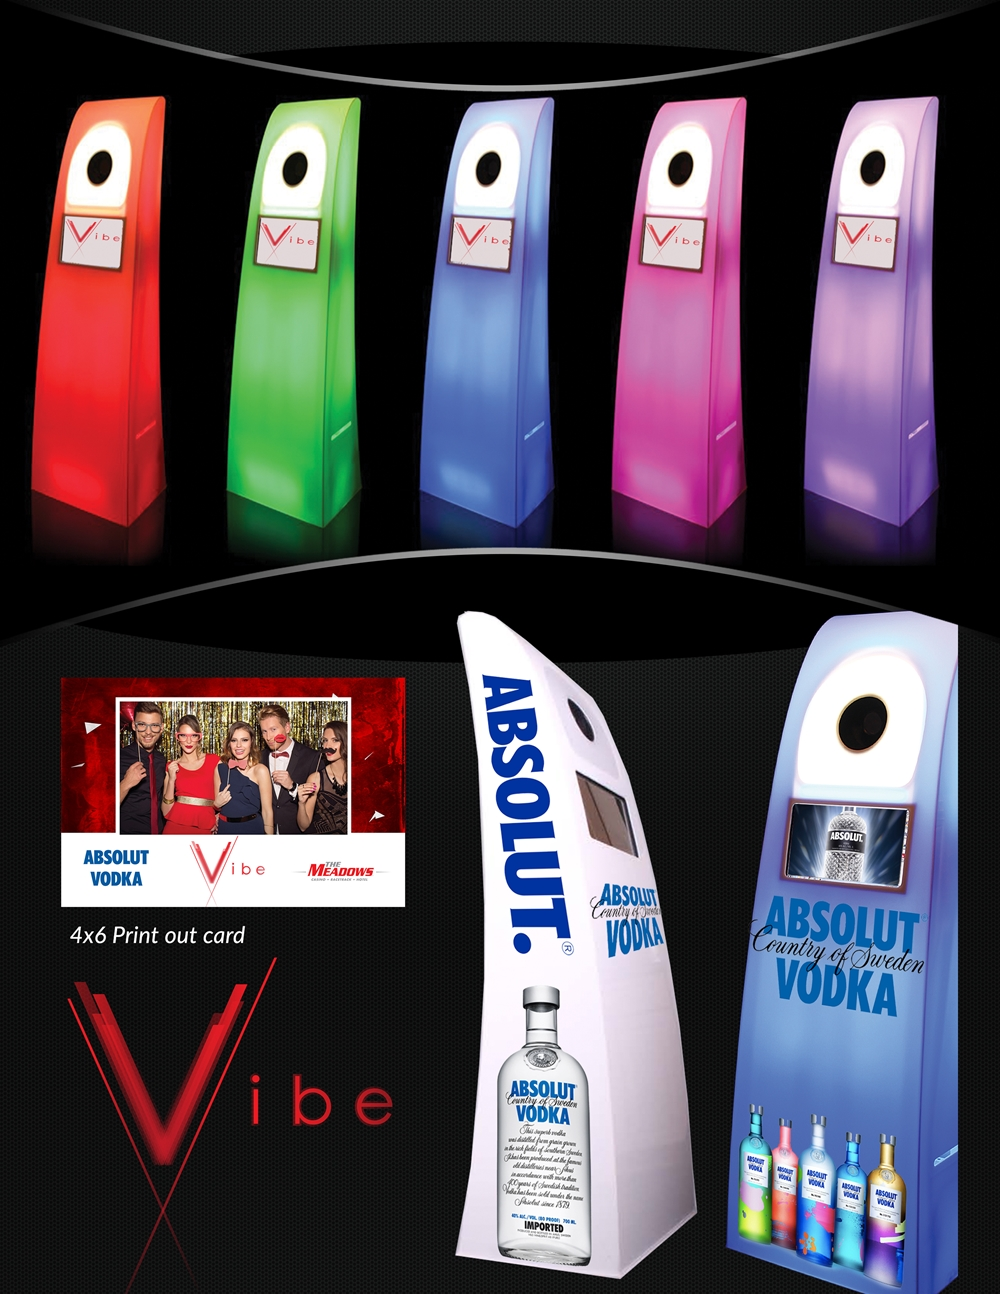 led-photo-booth-absolut